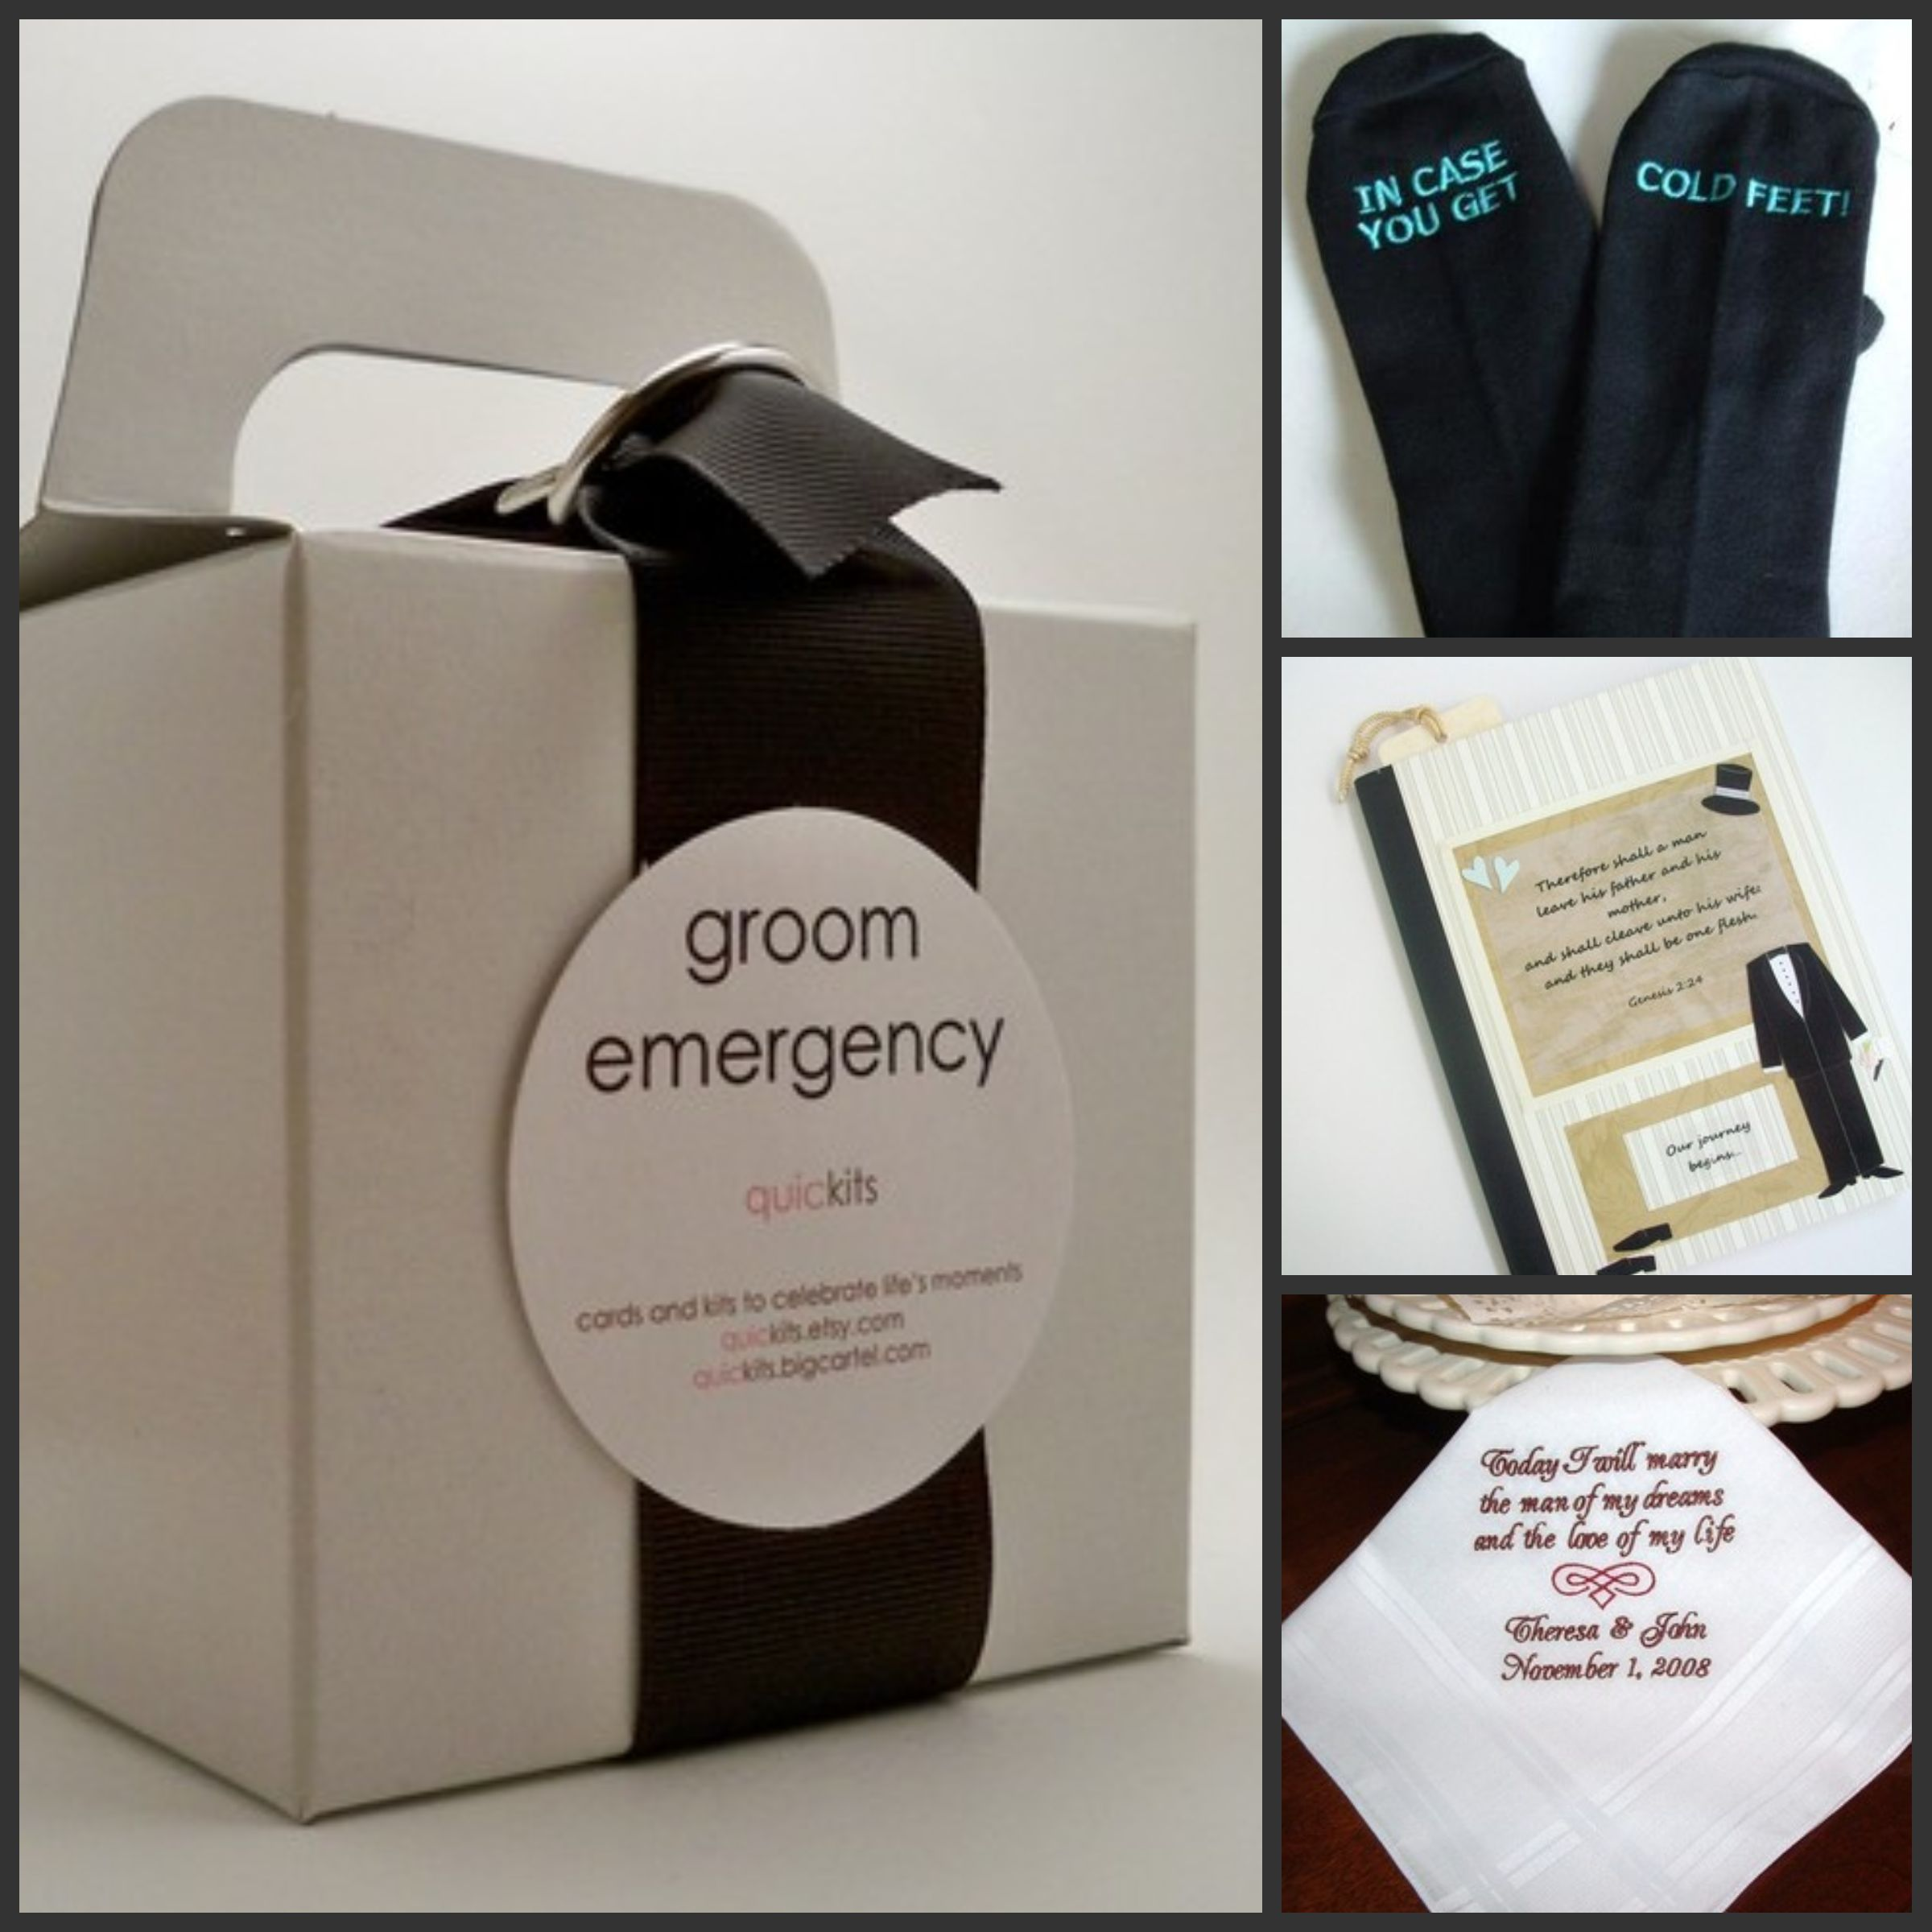 Best Wedding Gifts For Bride From Groom : personal gifts for your groom clockwise from left groom emergency kit ...